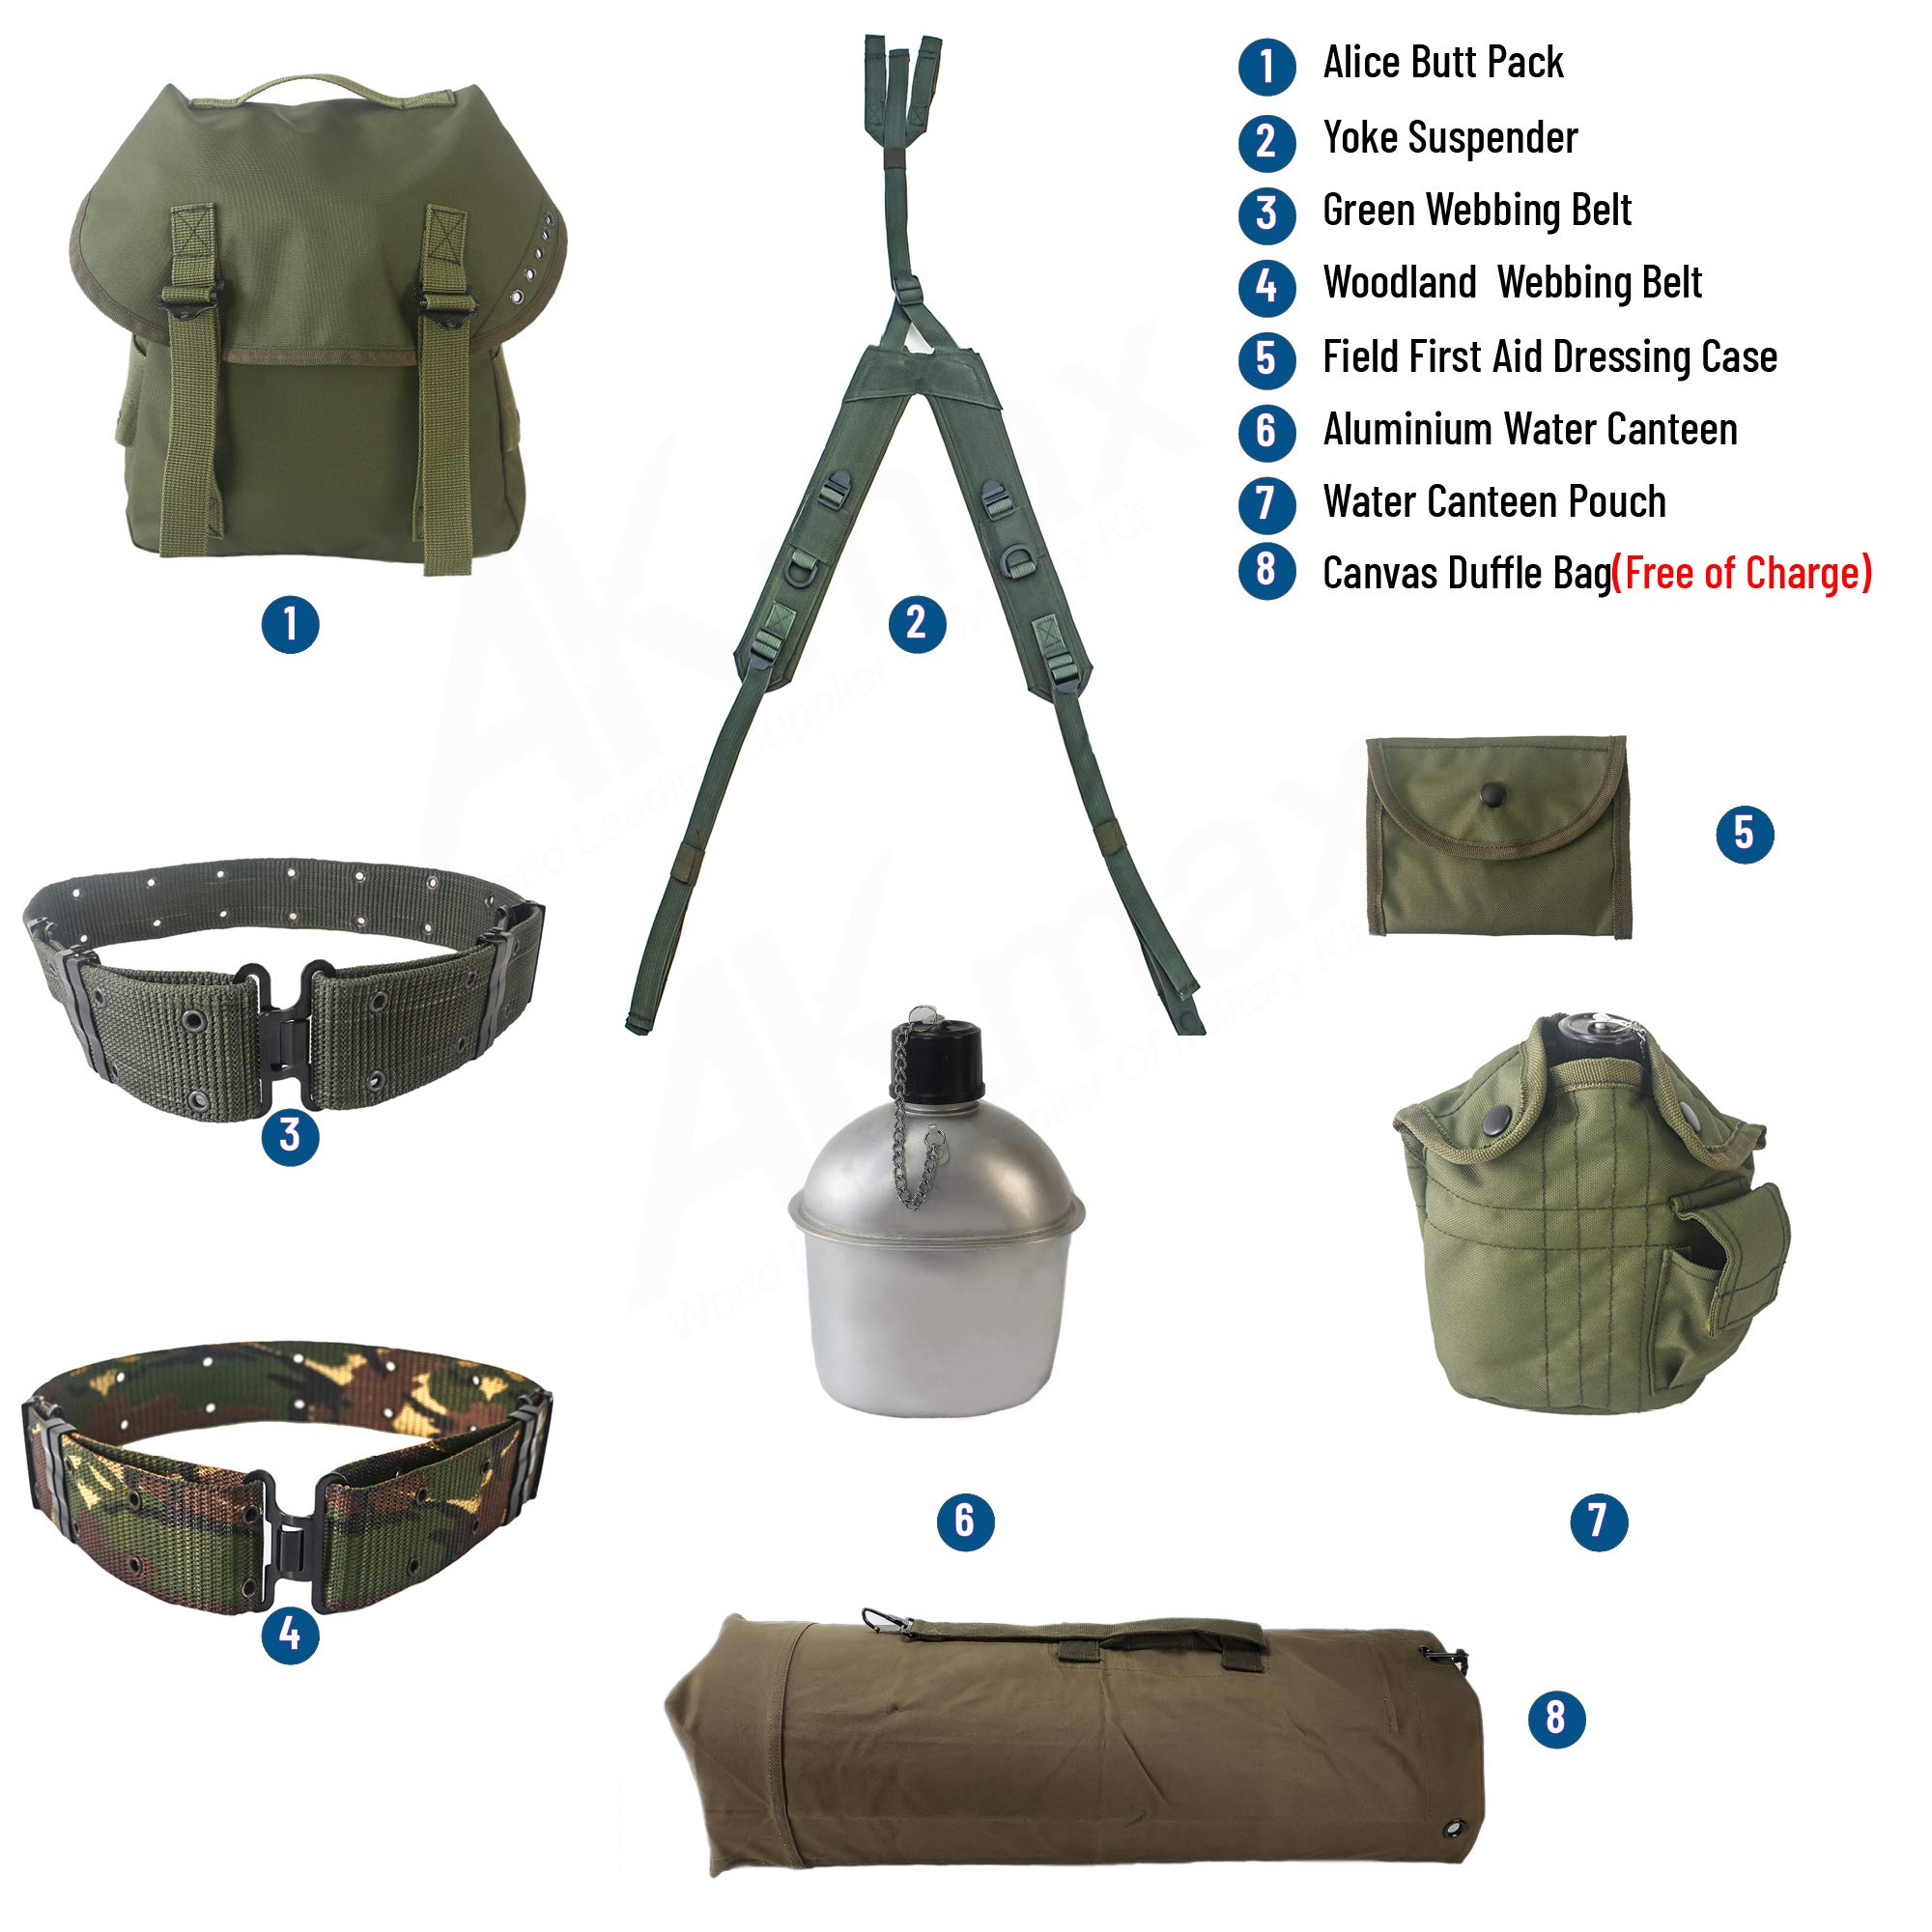 AKmaxUS Alice Pack Accessories 8pcs 600D Polyester Waterproof Olive Drab